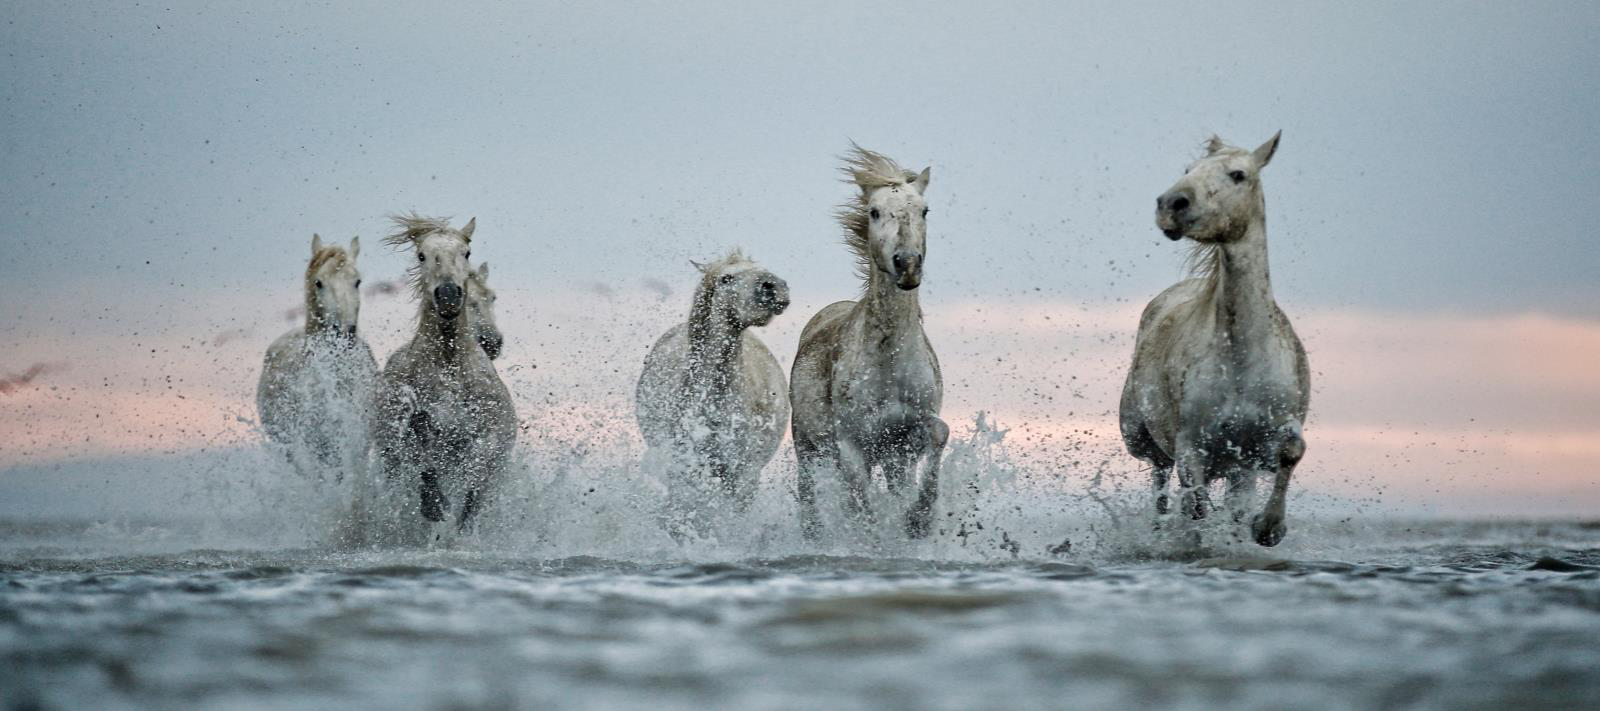 <h5>White Horses</h5><p>By Colin Brister</p>